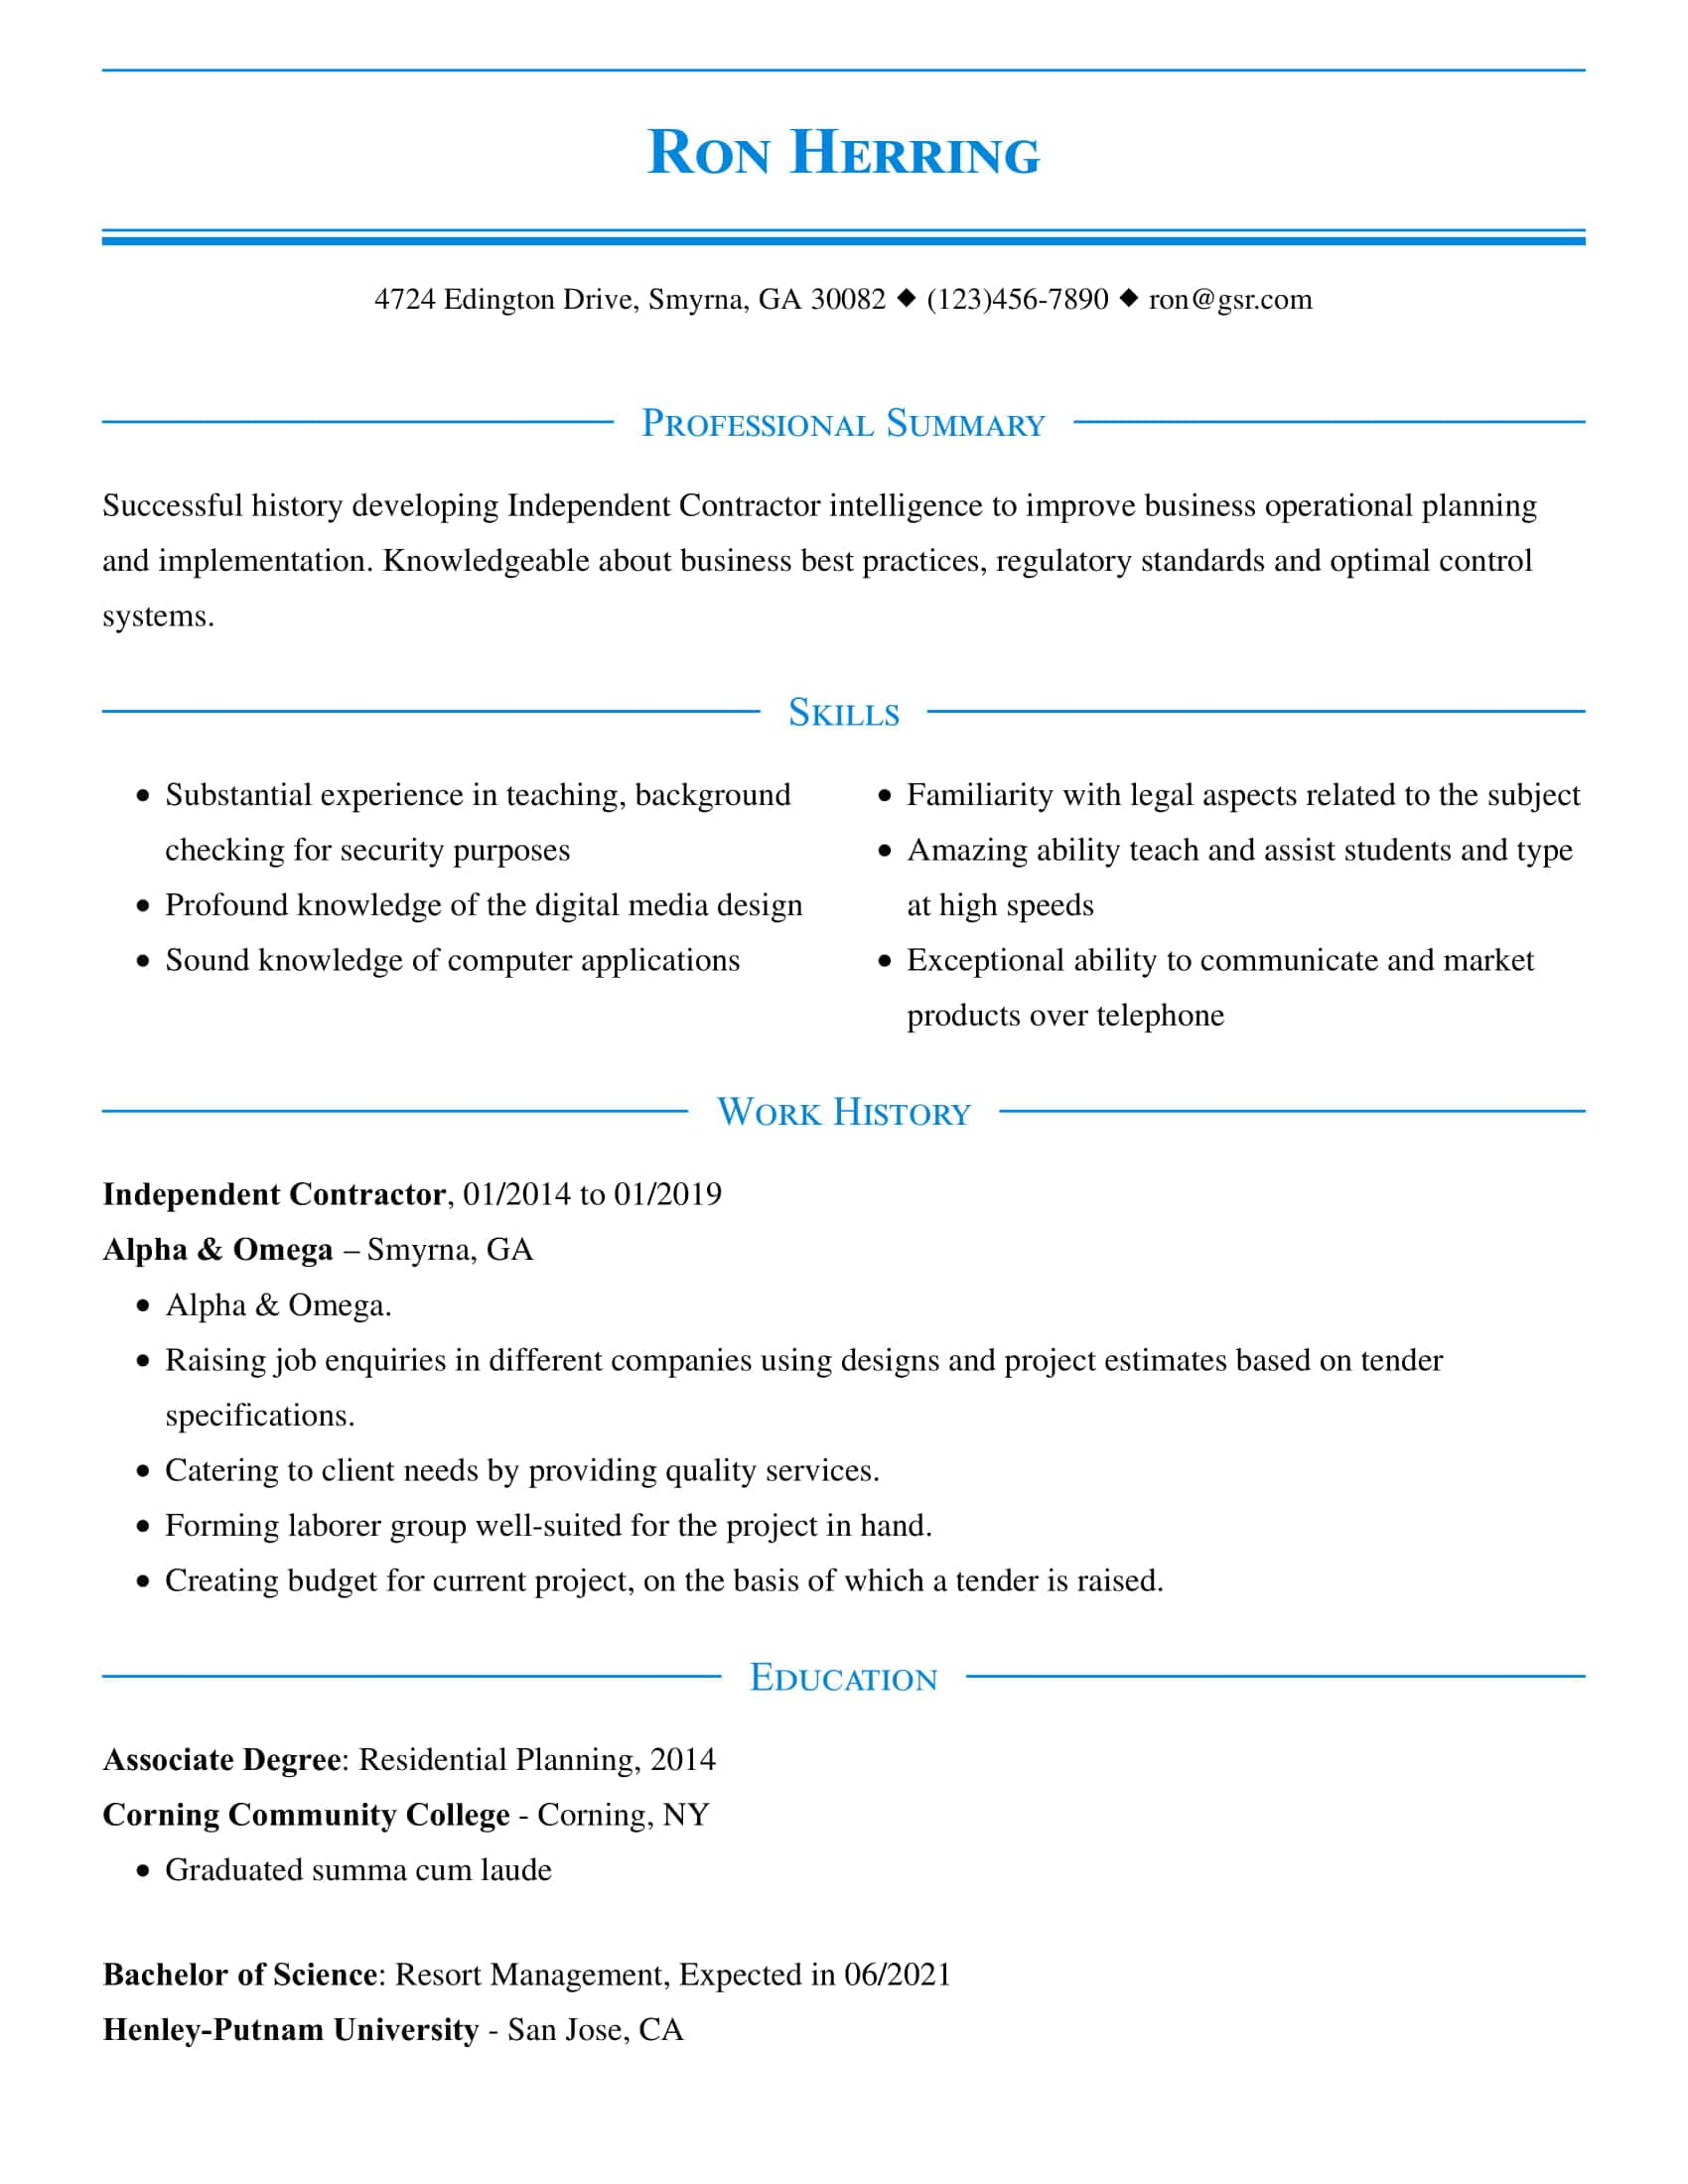 resume templates edit in minutes tender executive template refined blue masters level Resume Tender Executive Resume Template